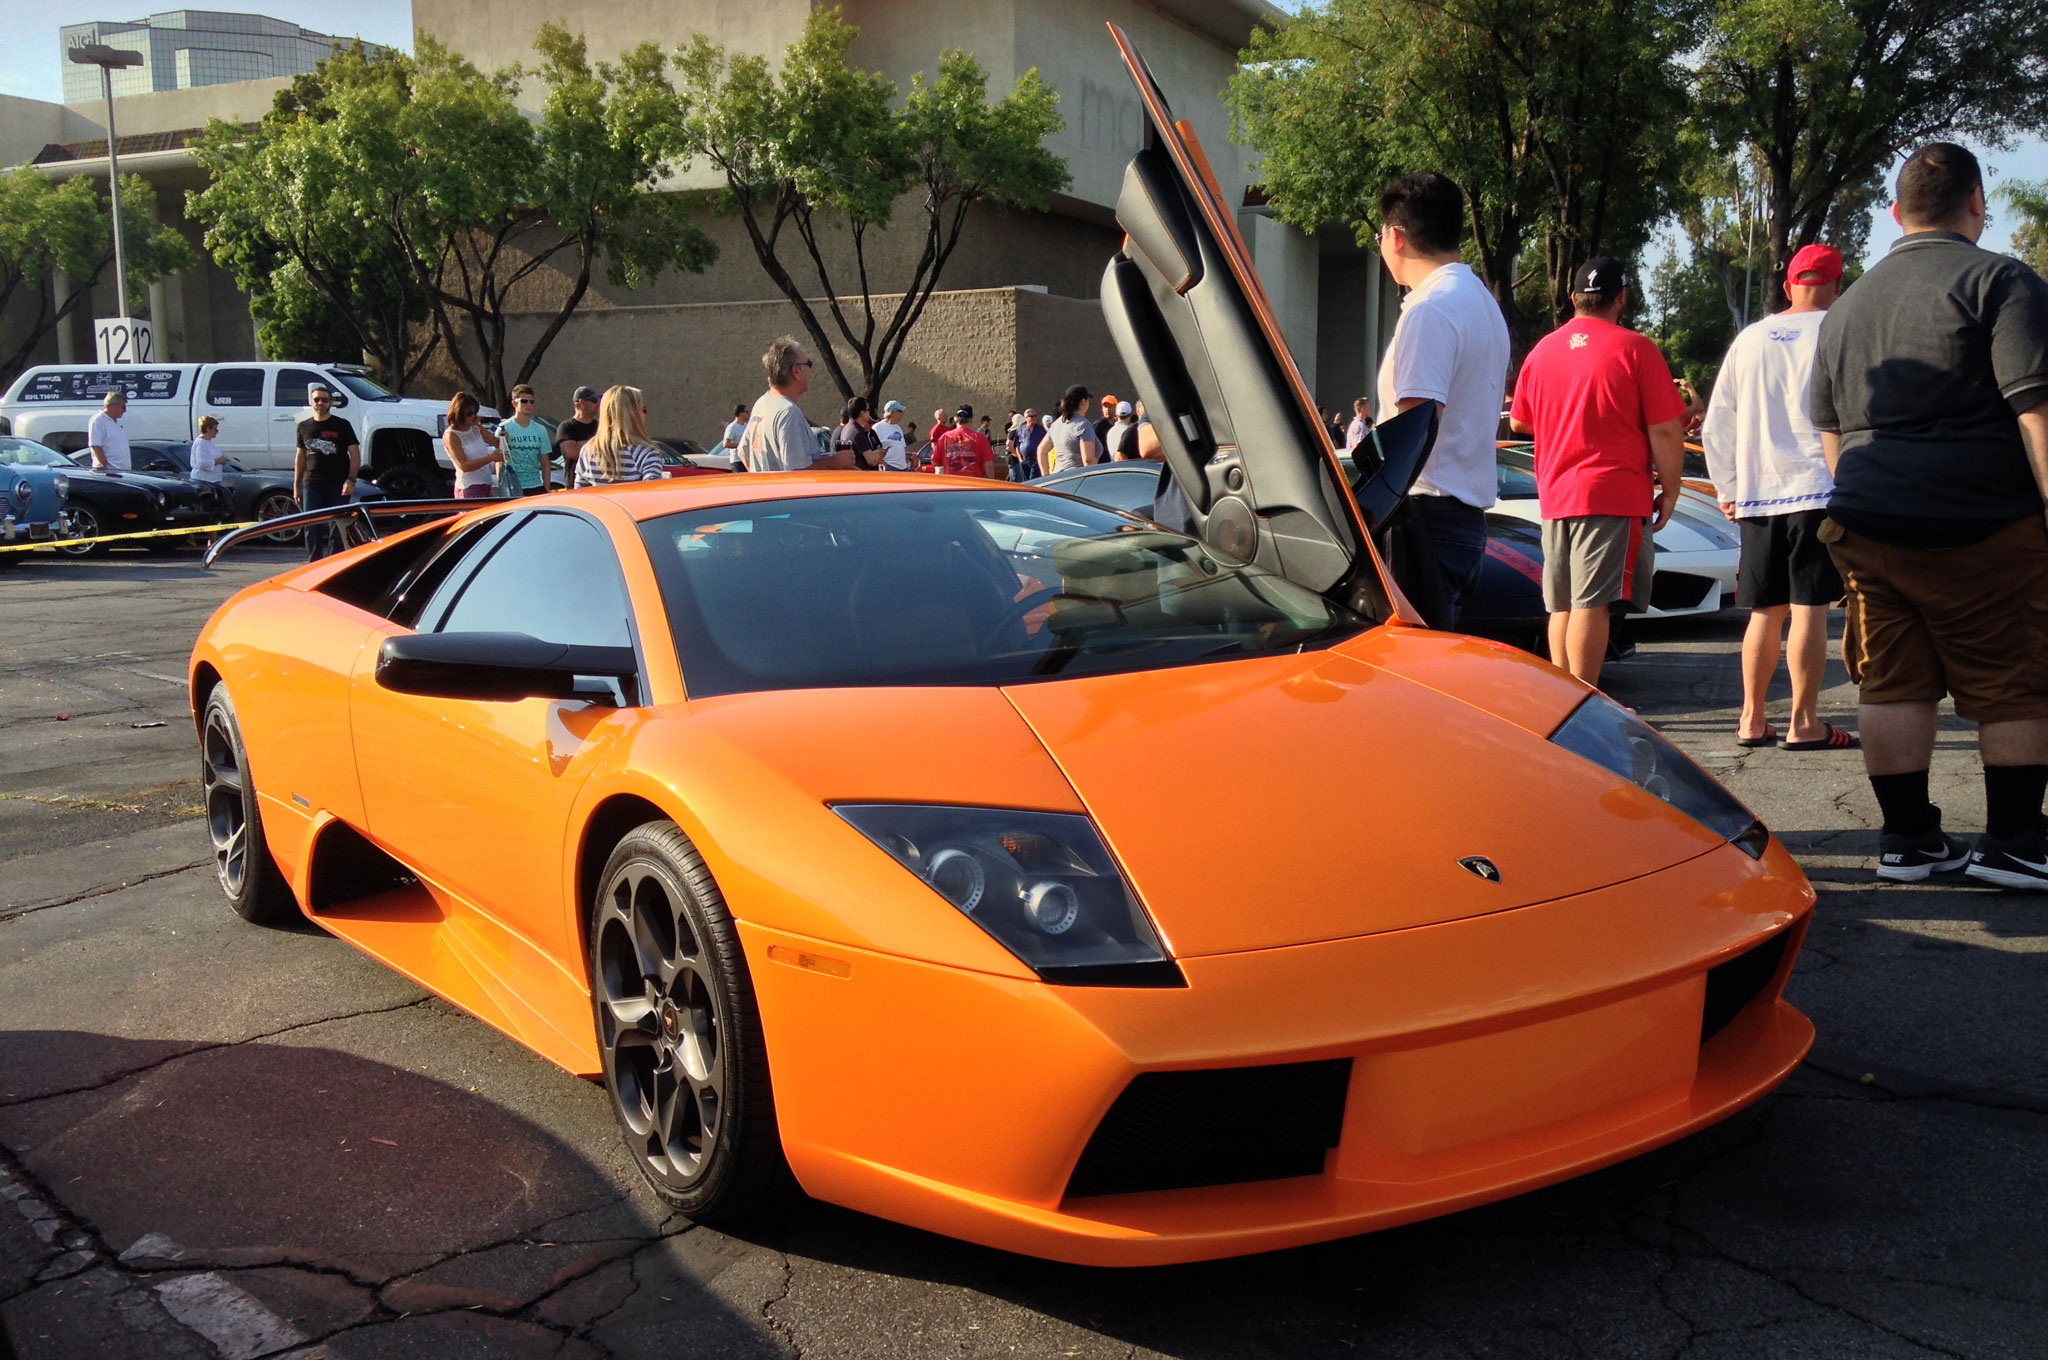 The best color for a Lamborghini, arguably, is orange – as is evident with this pristine Murcielago.